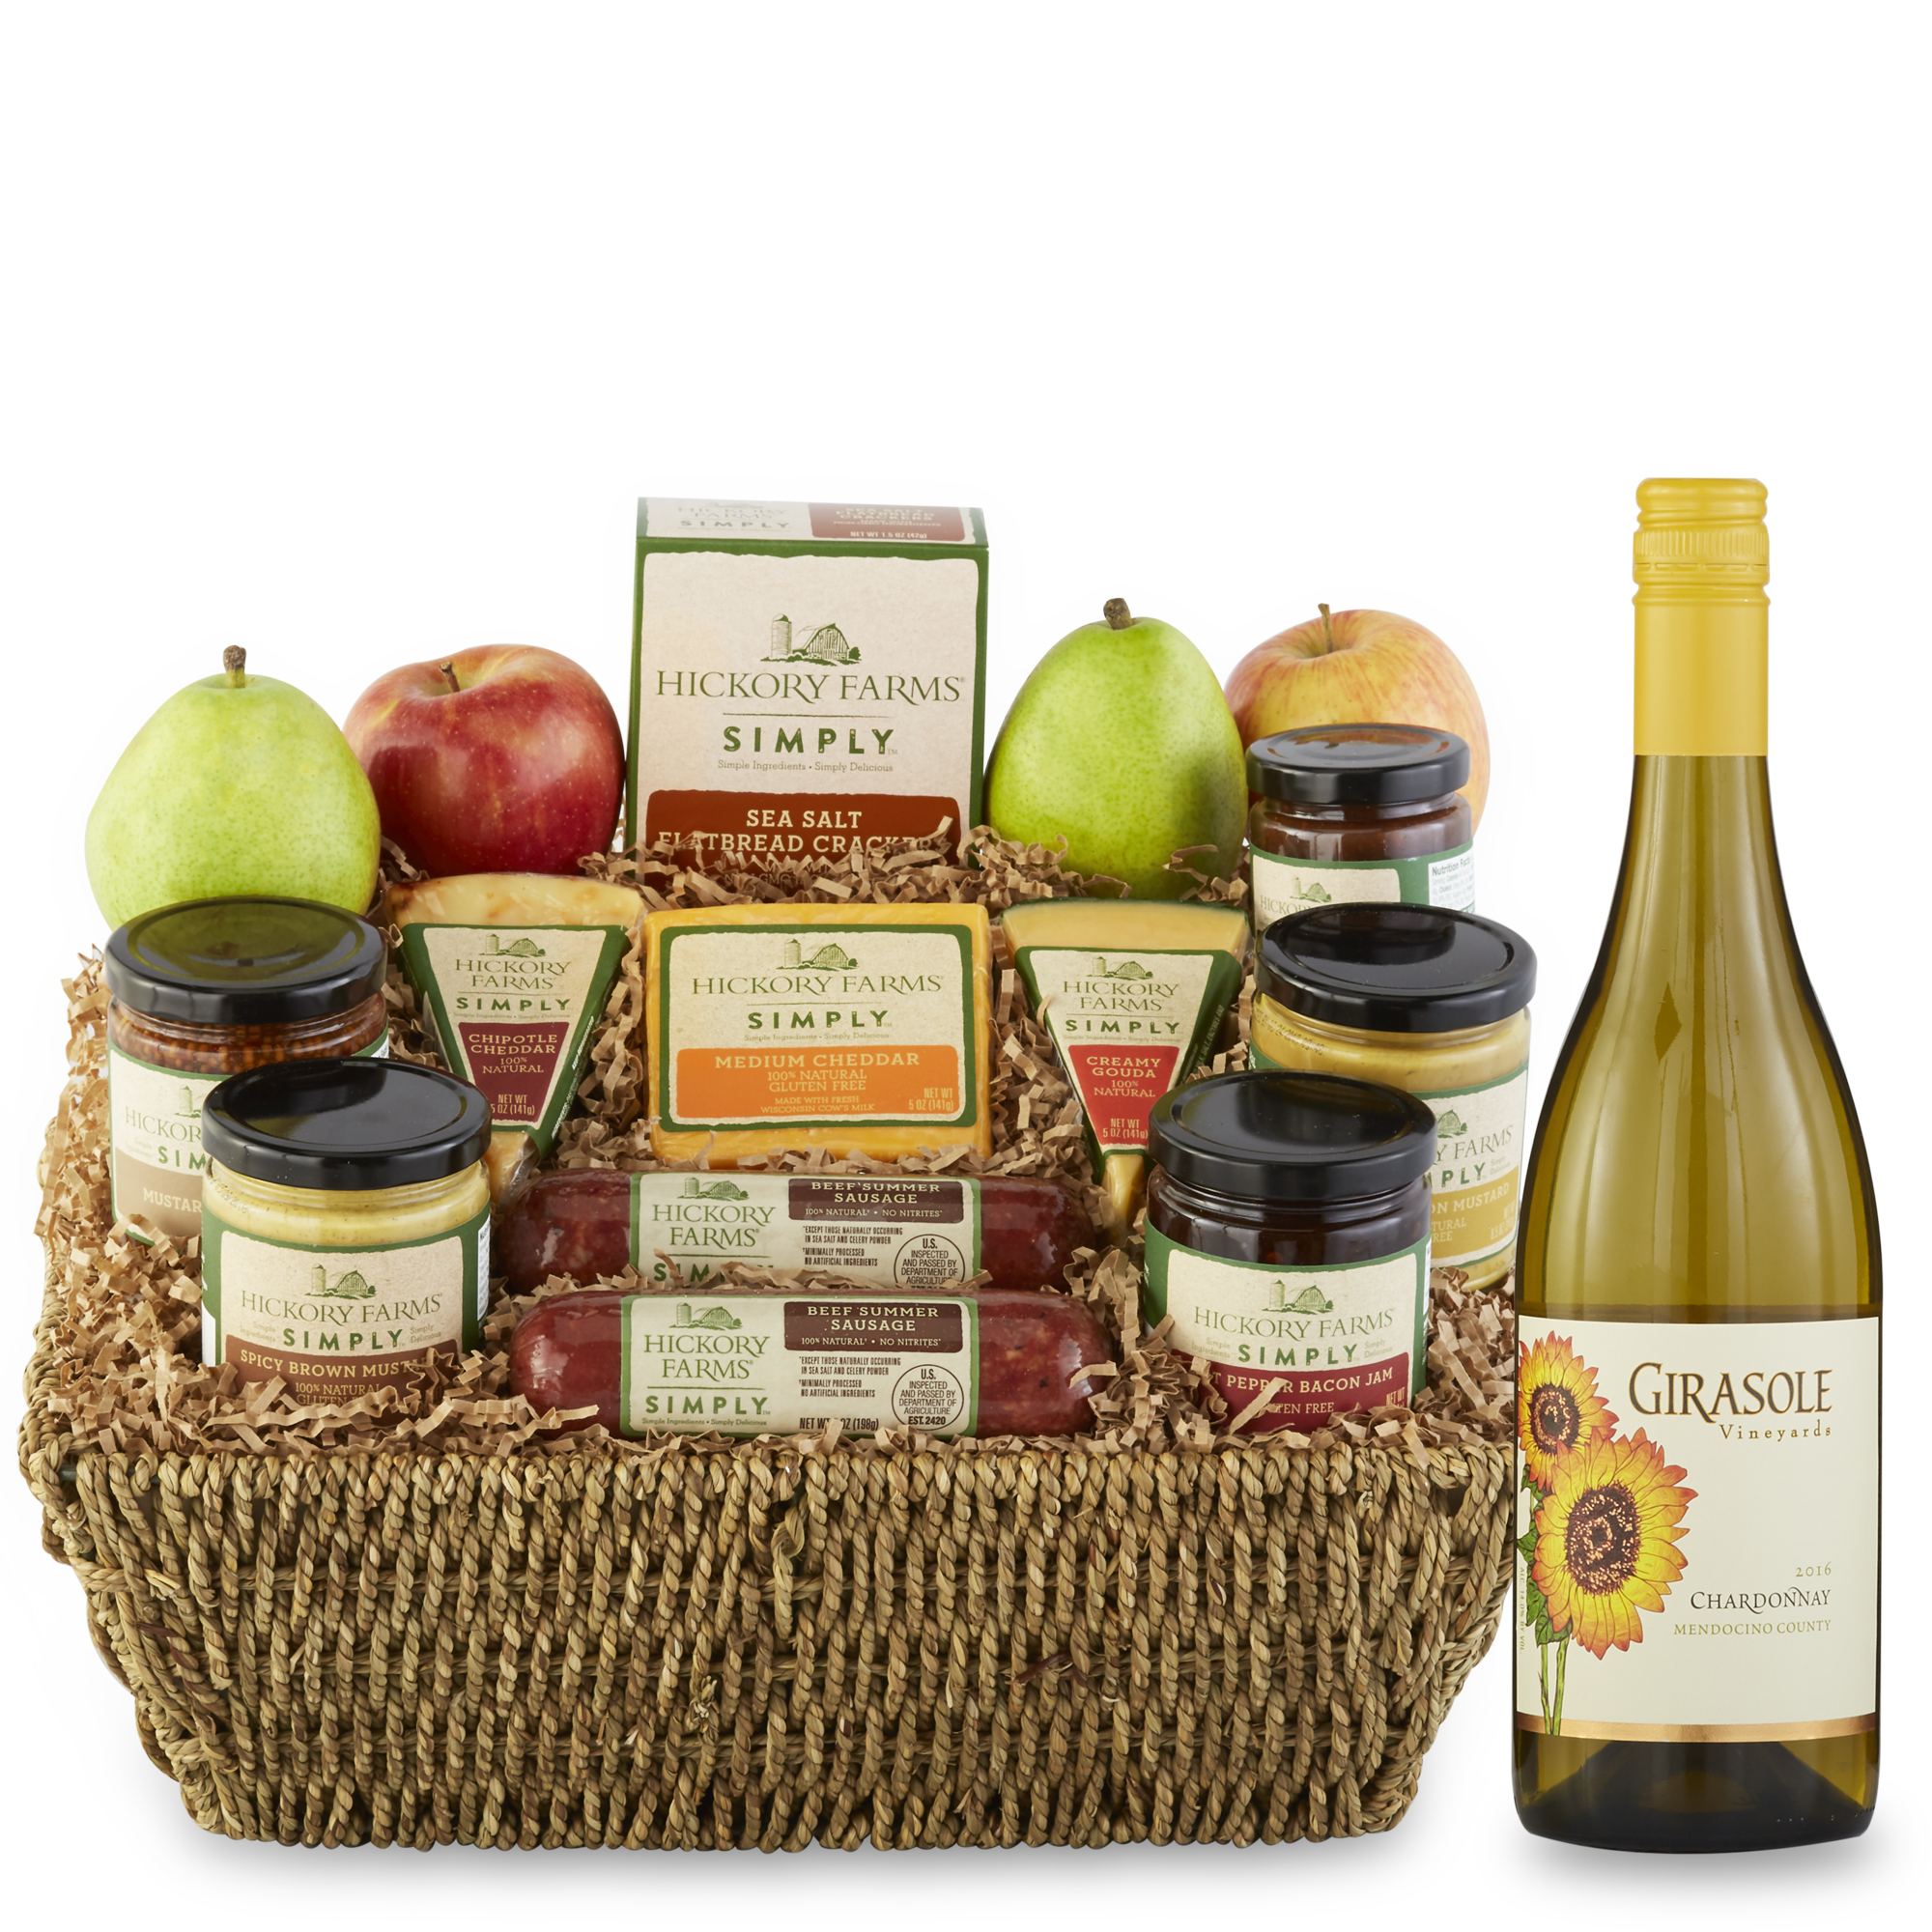 Fruit gift baskets hickory farms hickory farms simply festive gift basket negle Image collections